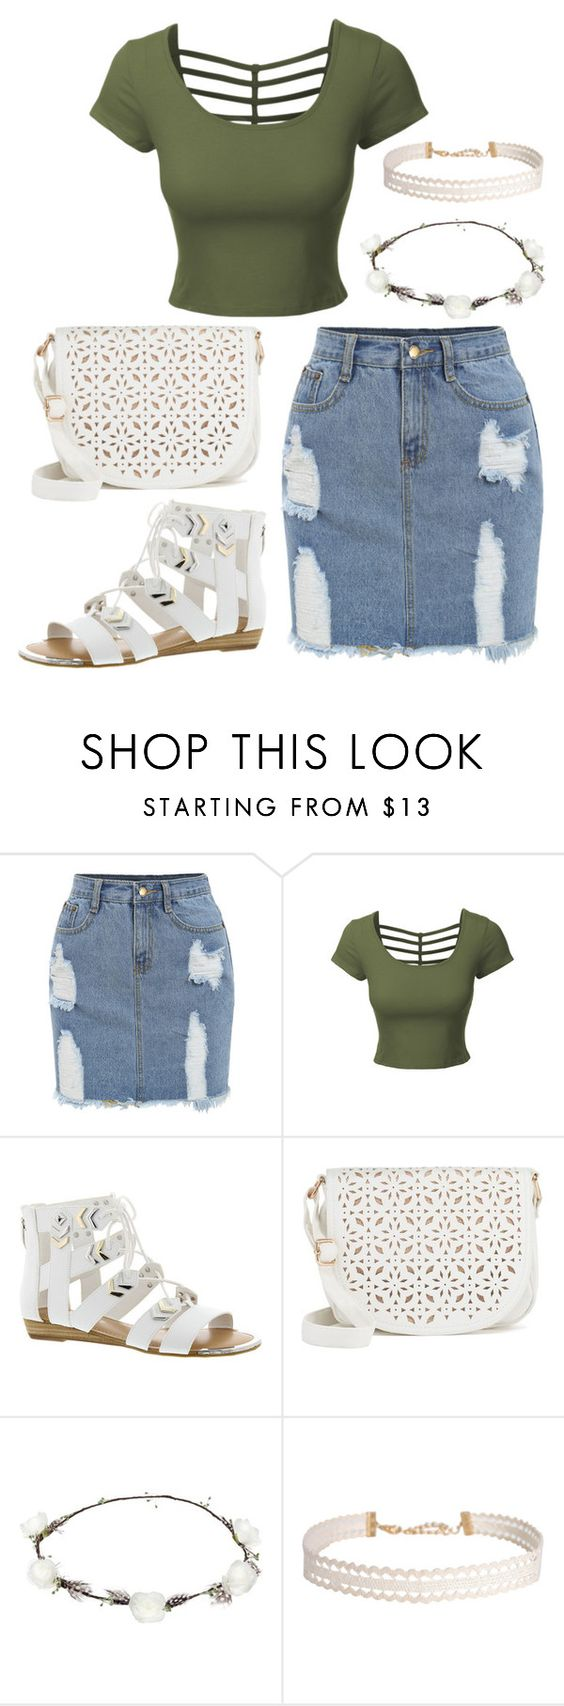 """#50"" by rociorp36 ❤ liked on Polyvore featuring LE3NO, Fergie, Under One Sky, Lipsy and Humble Chic"